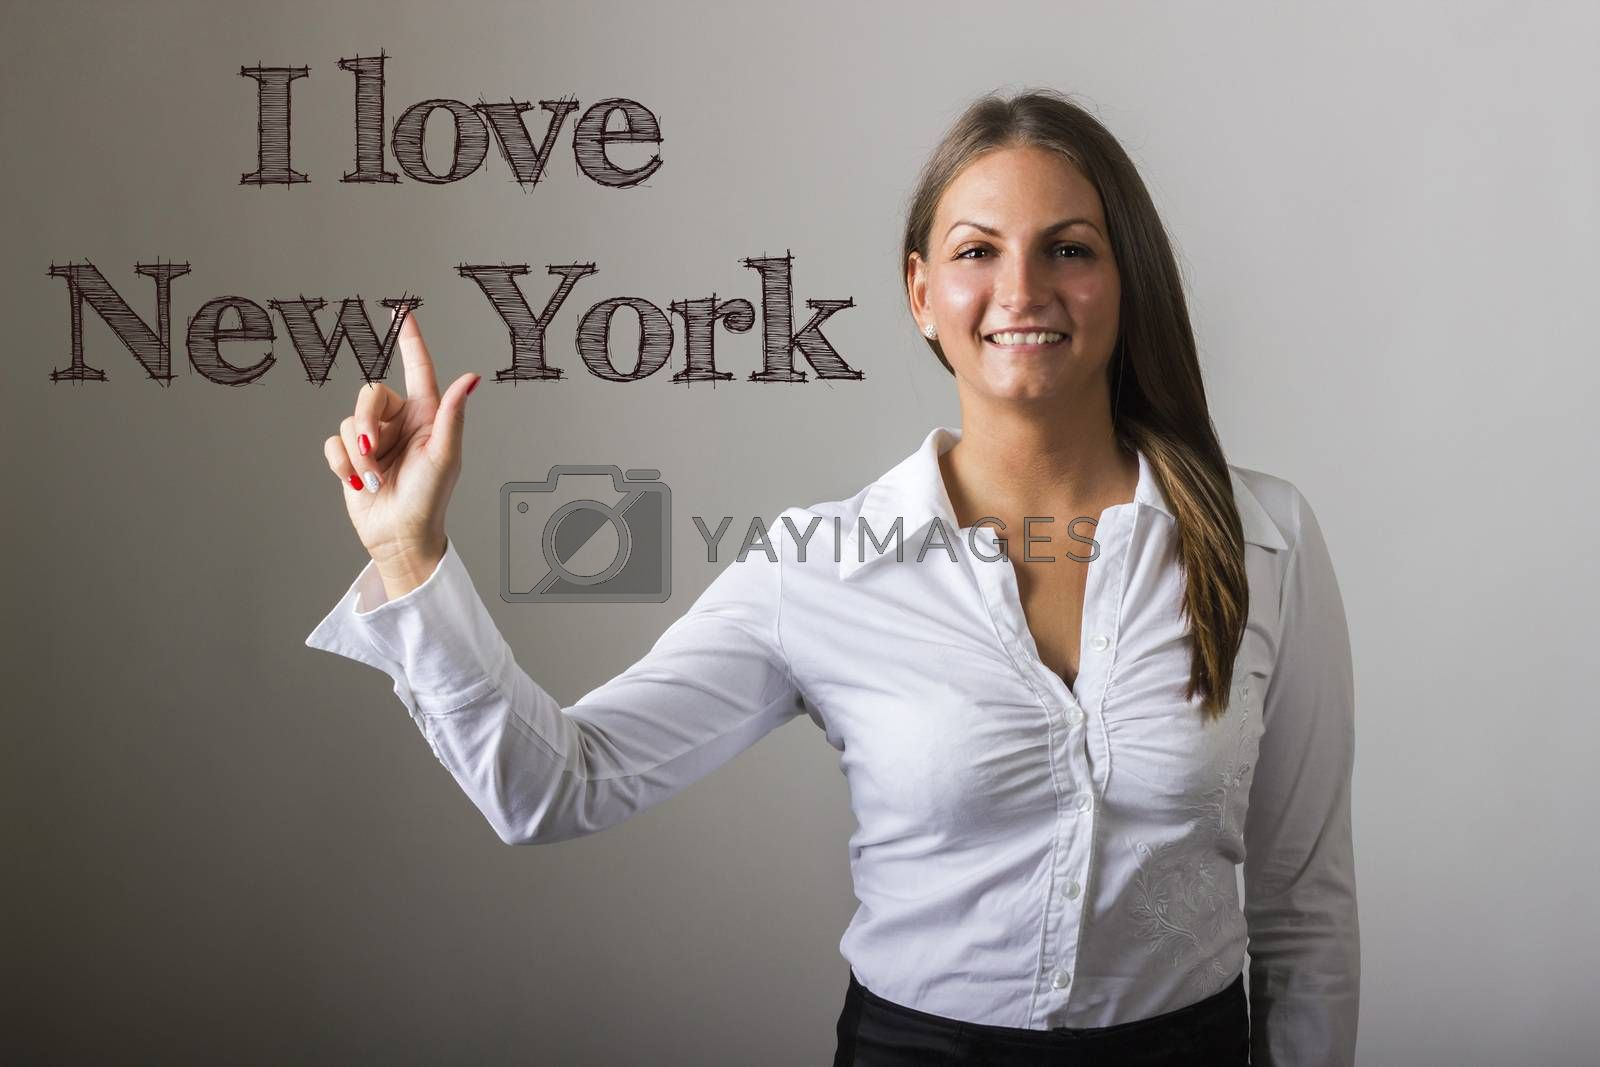 I love New York - Beautiful girl touching text on transparent surface - horizontal image